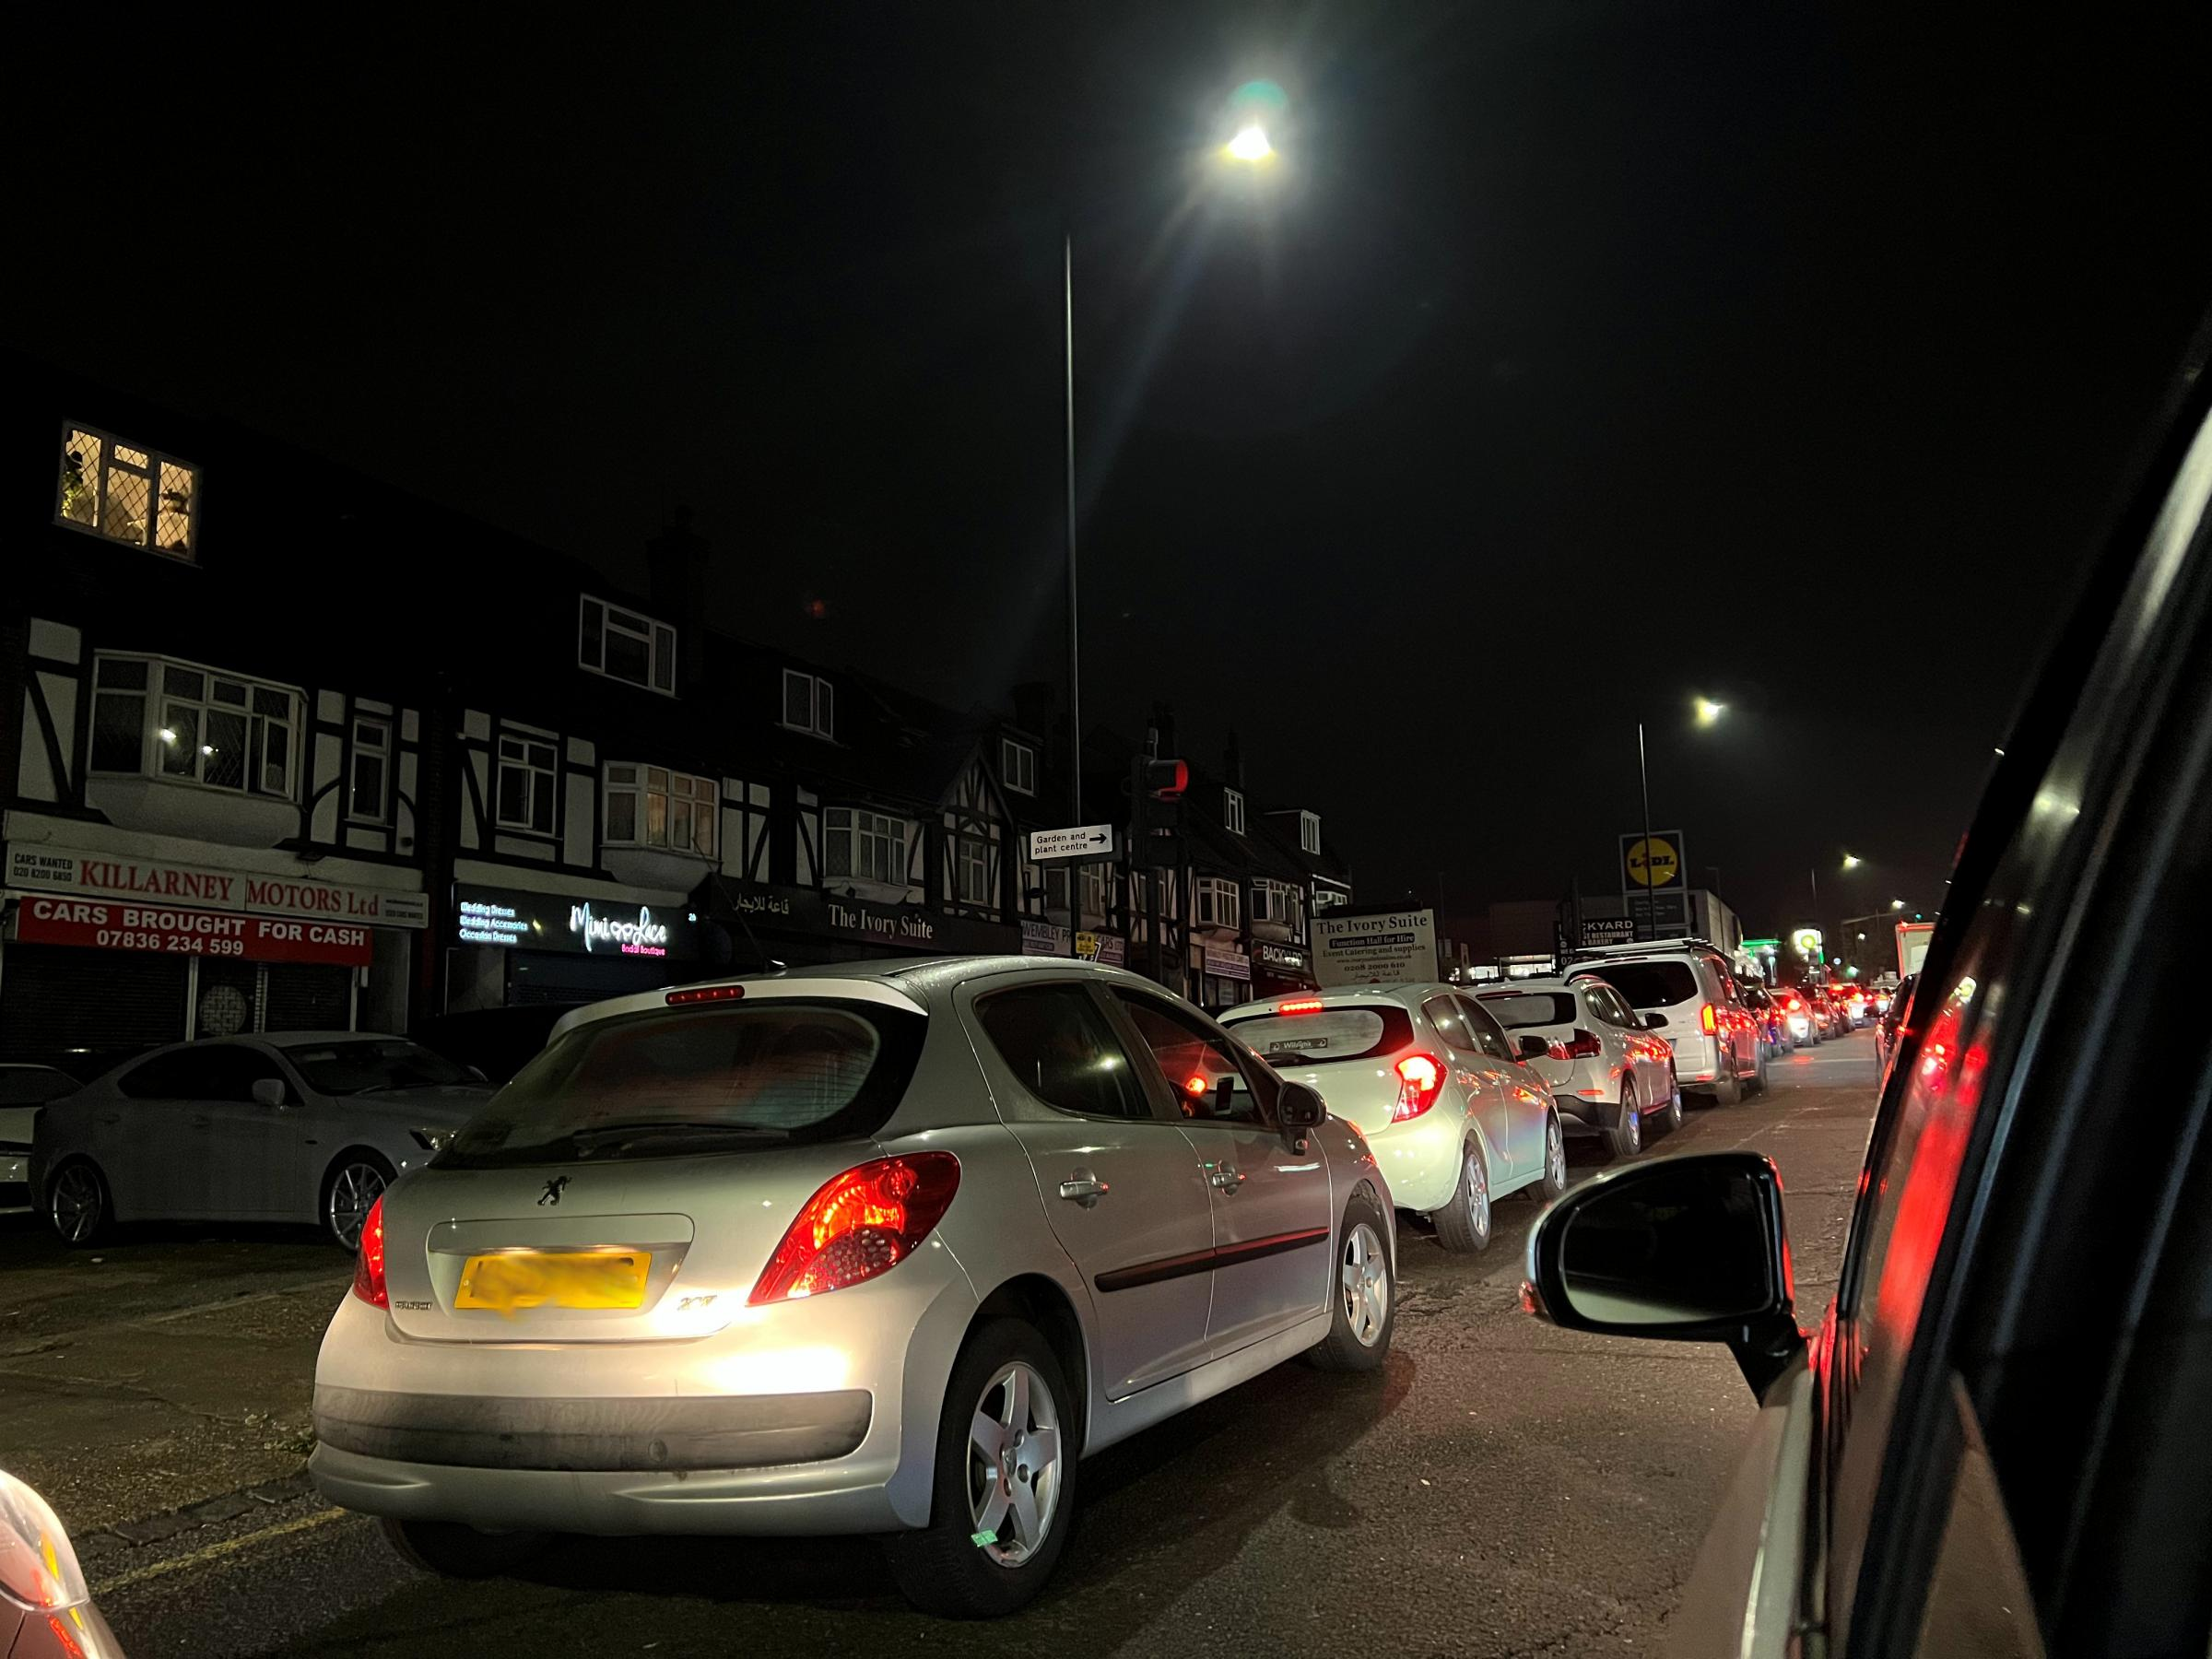 Some cars queued for at least 30 minutes in a wait for petrol (Photo: Joseph Reaidi)